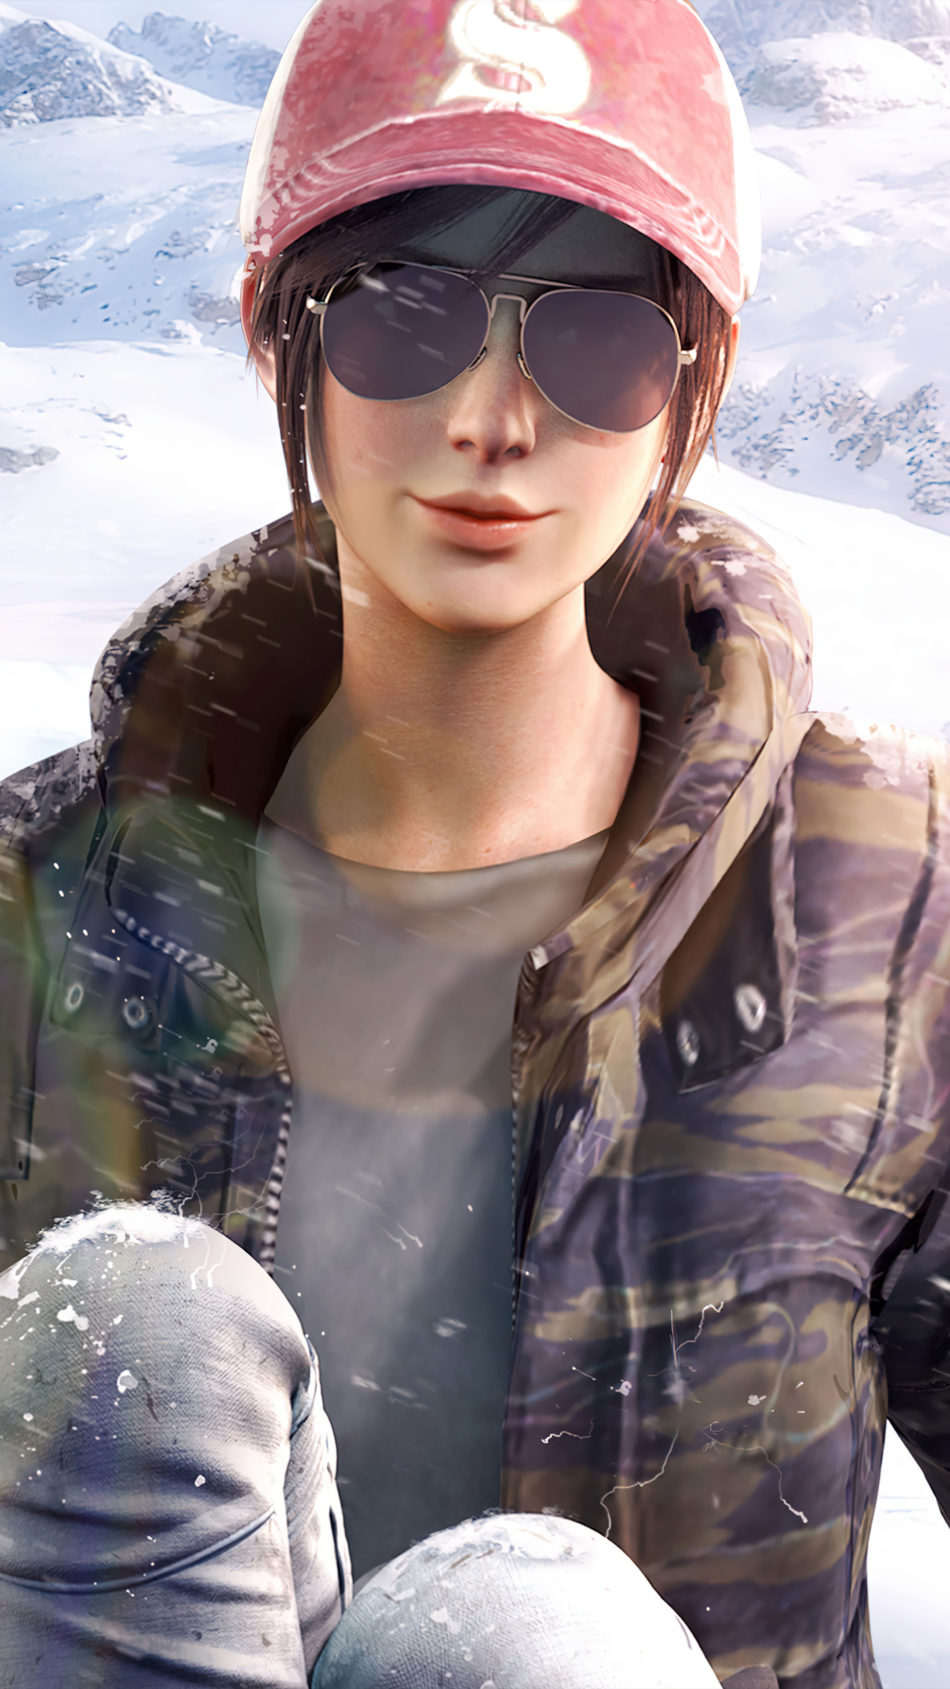 PUBG Girl Snowfall 4K Ultra HD Mobile Wallpaper